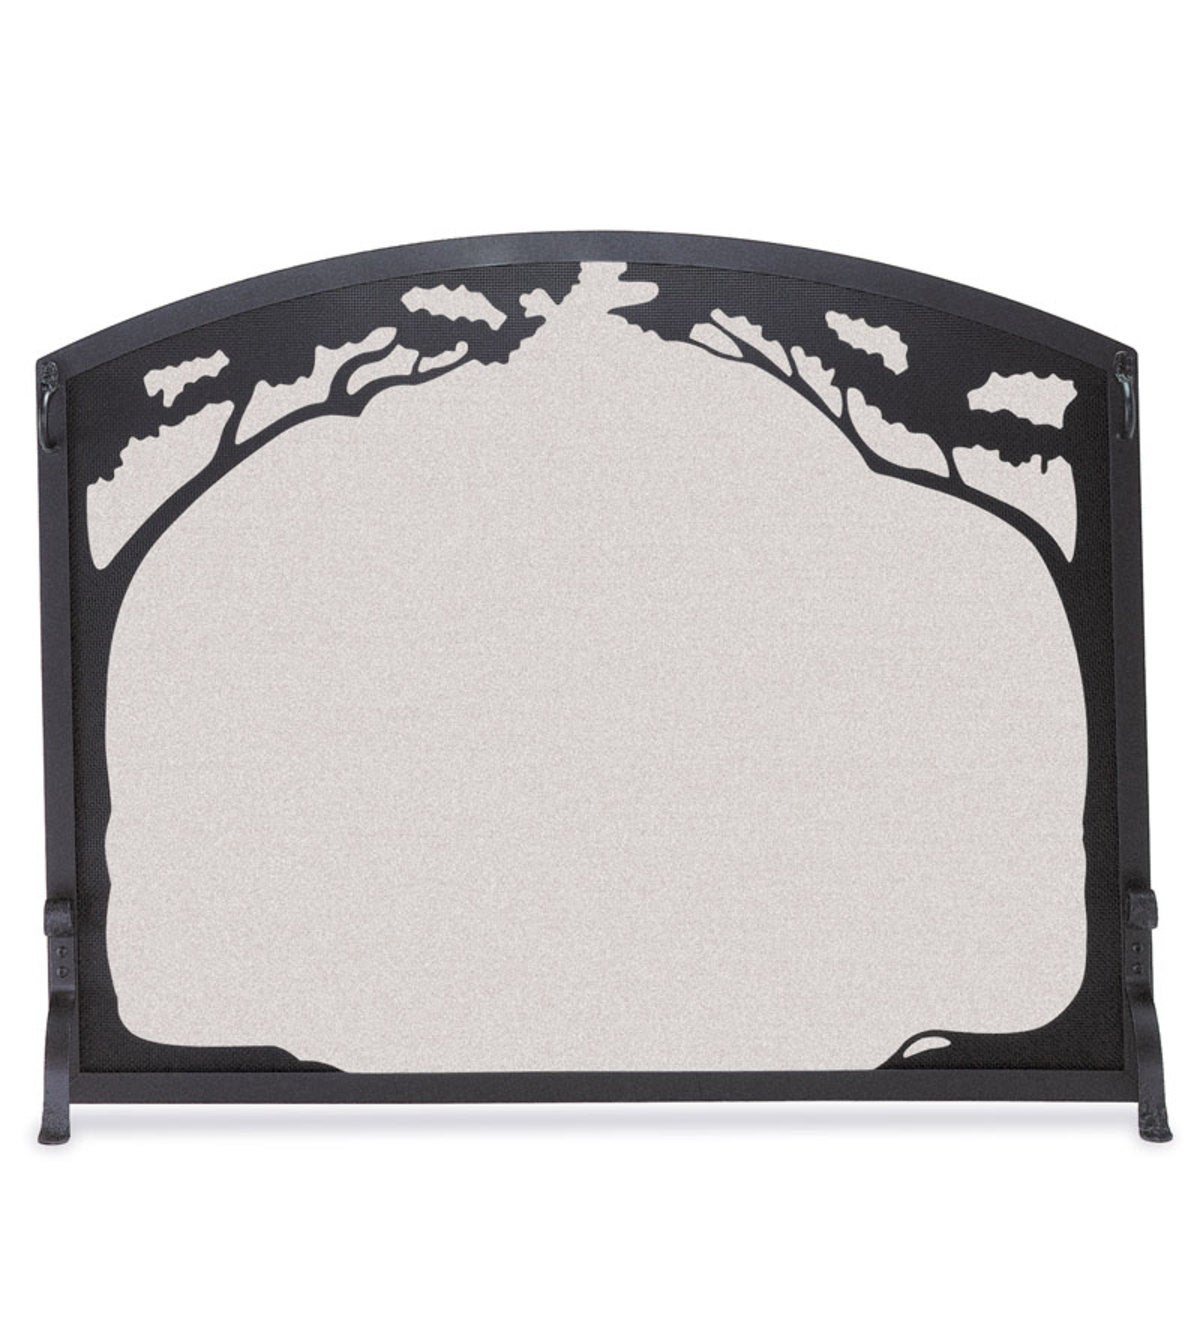 Grand Oak Flat Guard Fireplace Screen